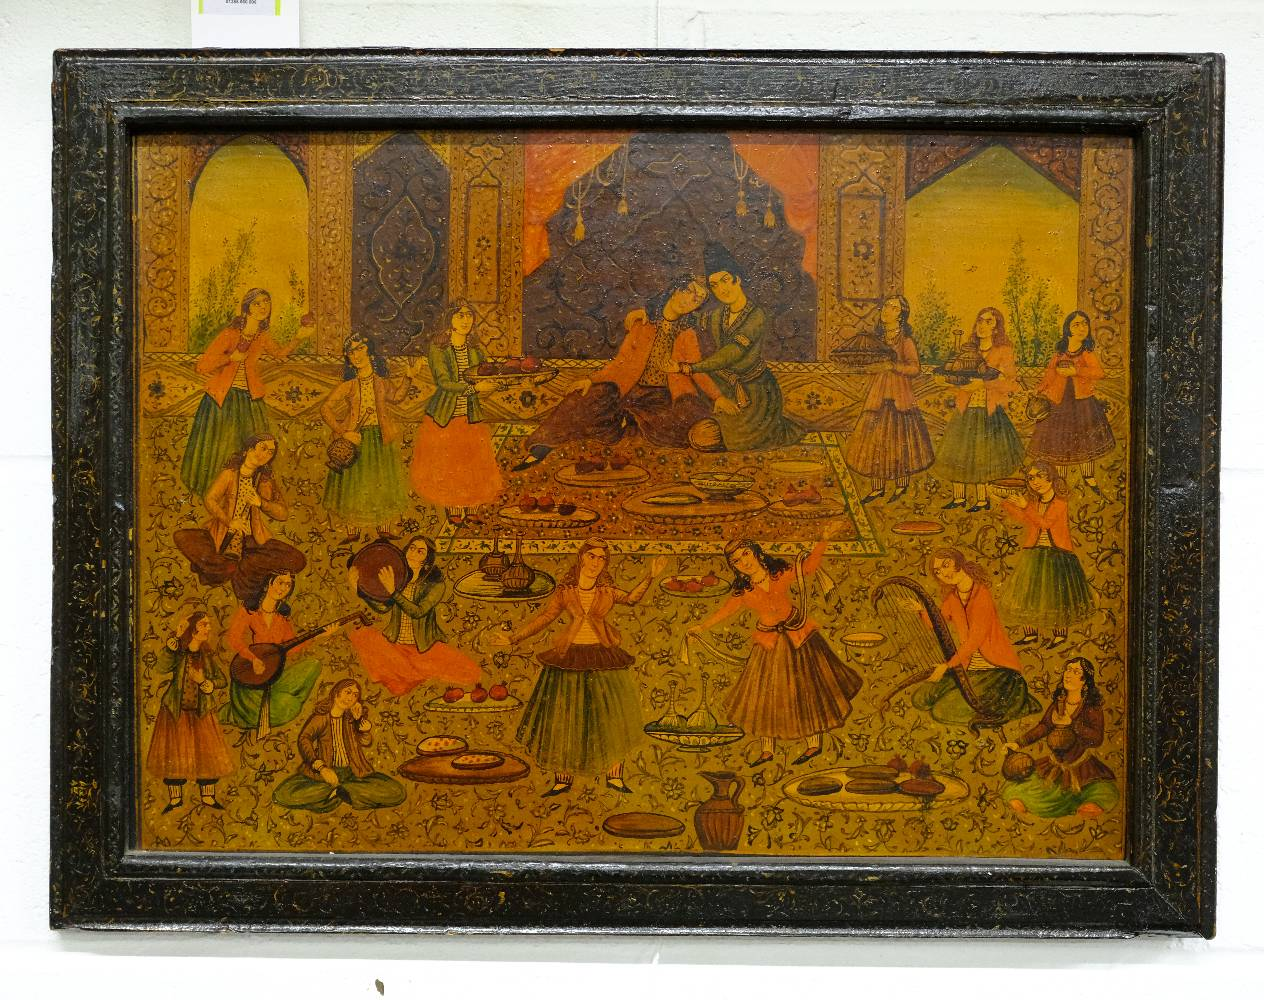 Lot 55 - Persian School. Wedding feast, 20th century, oil on wood panel, lacquered, 35.7 x 48 cm (1)